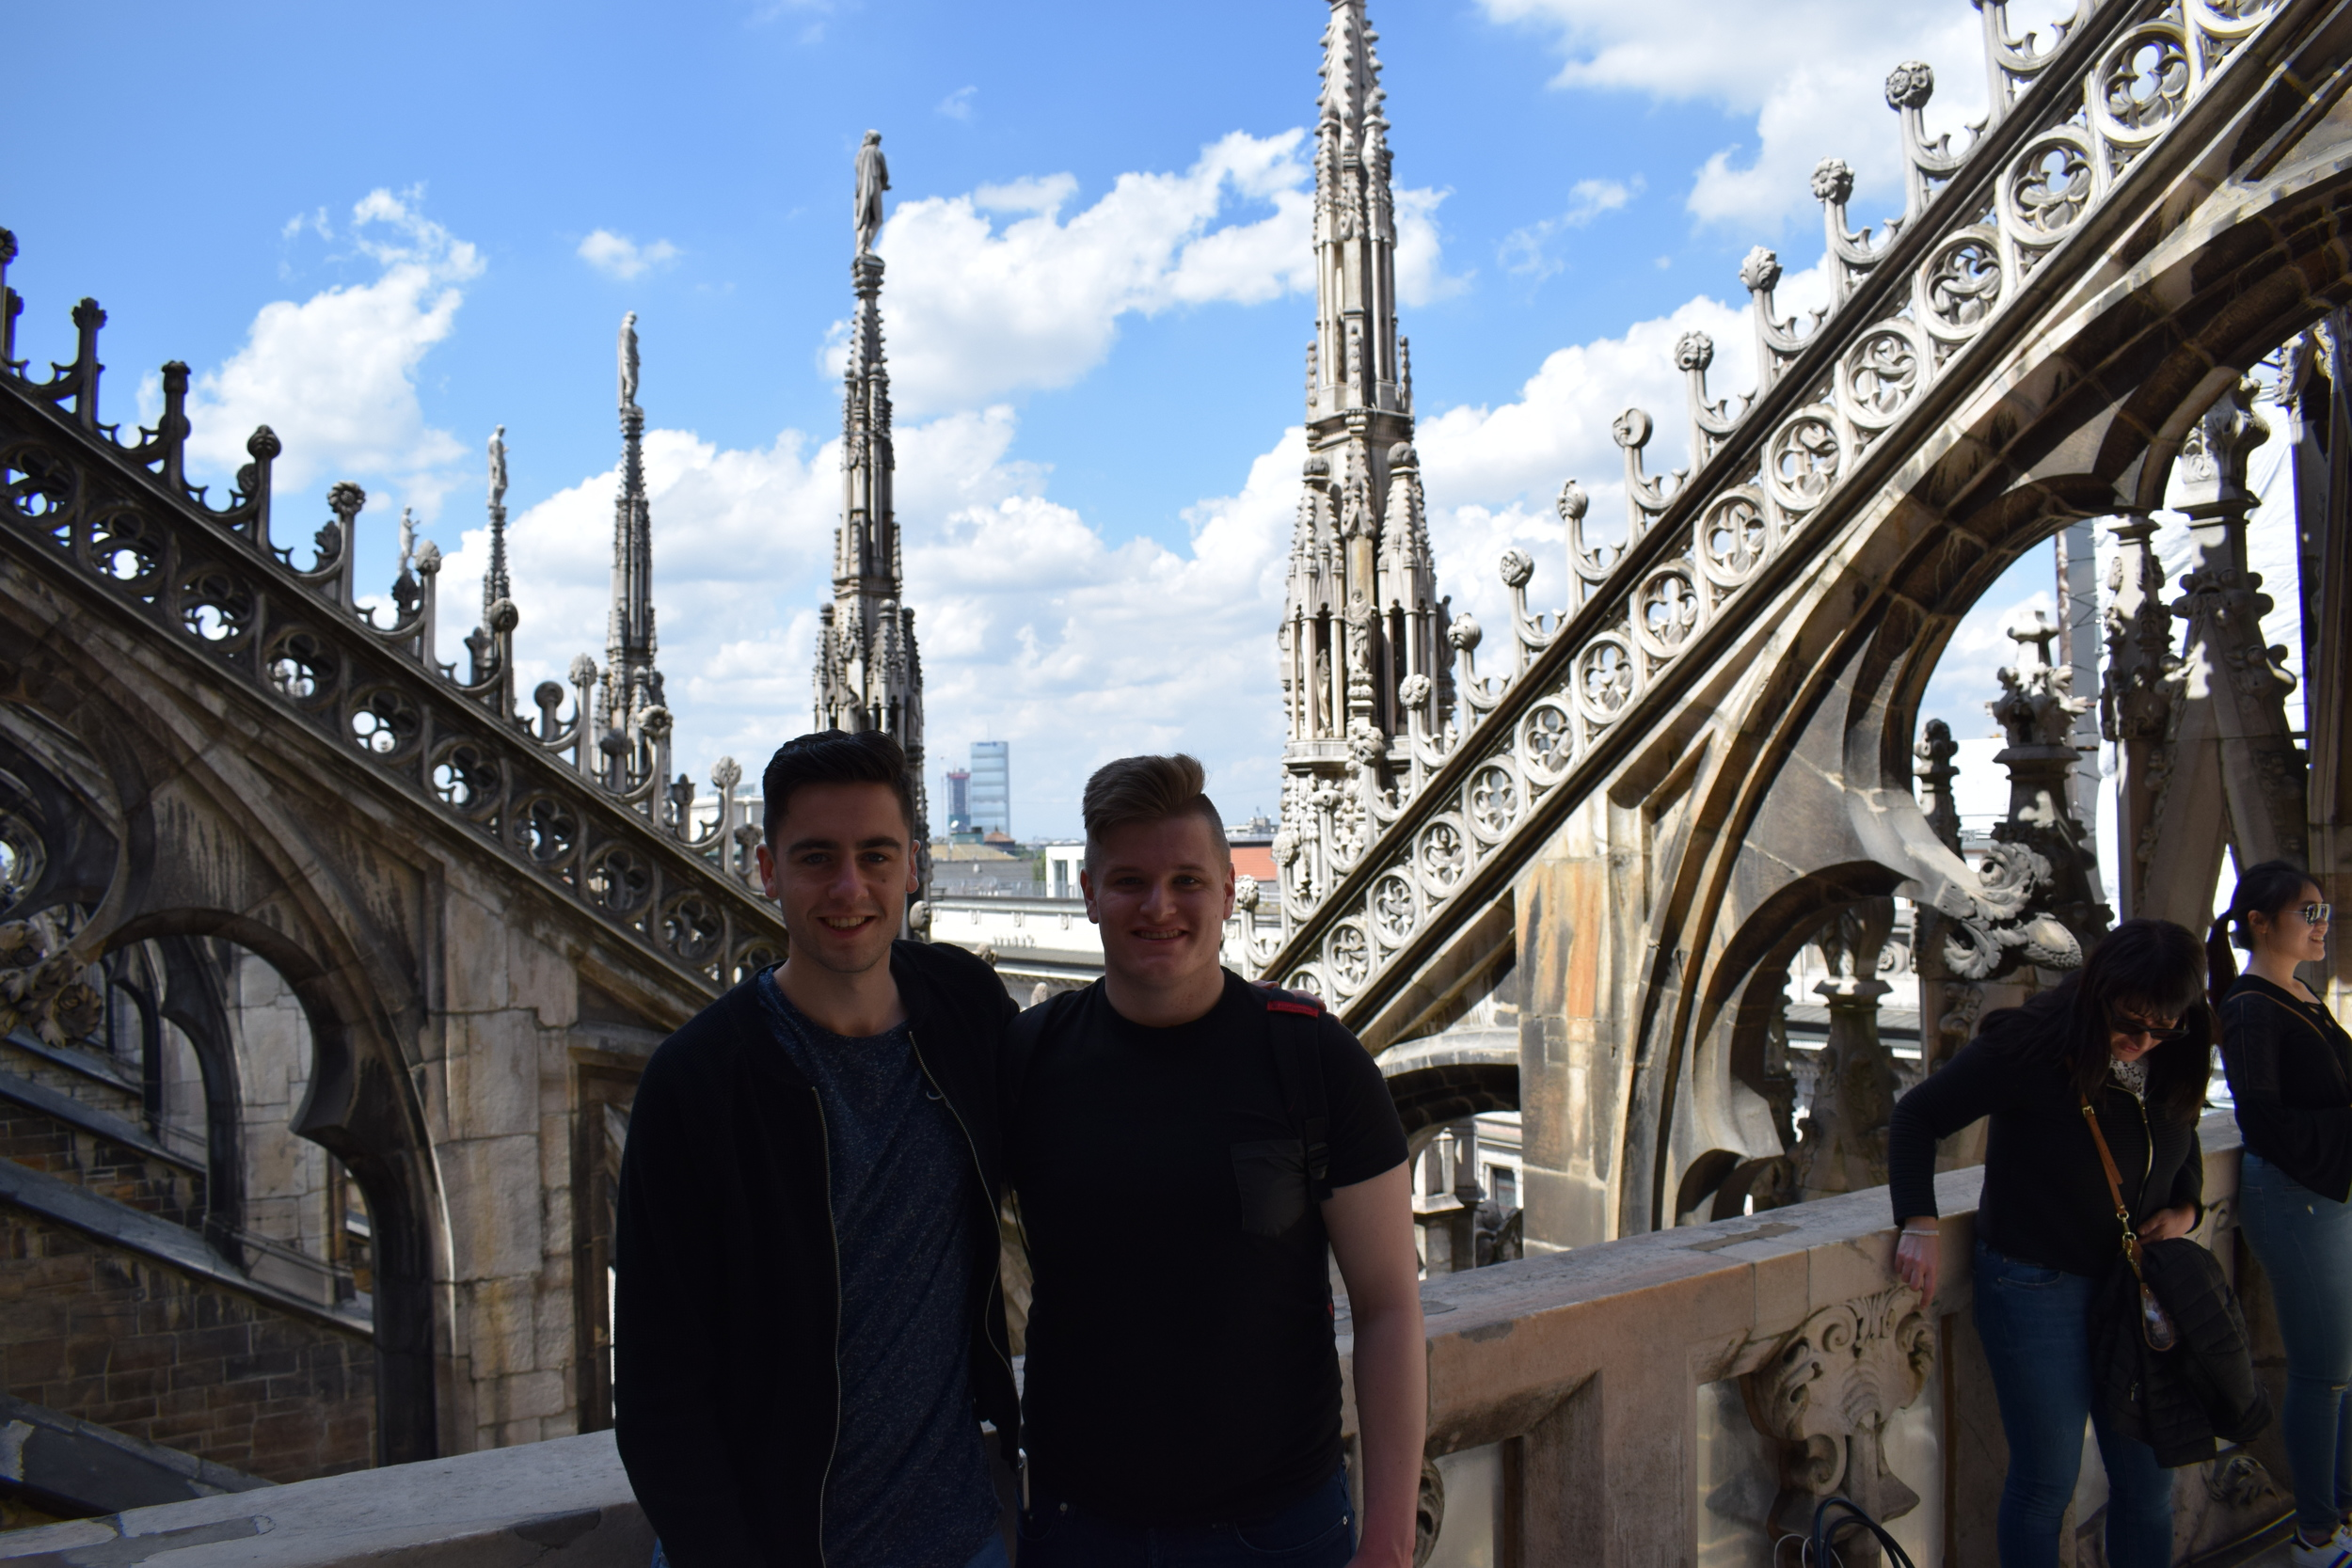 Taking a photo opportunity on Milan Cathedral's rooftop.